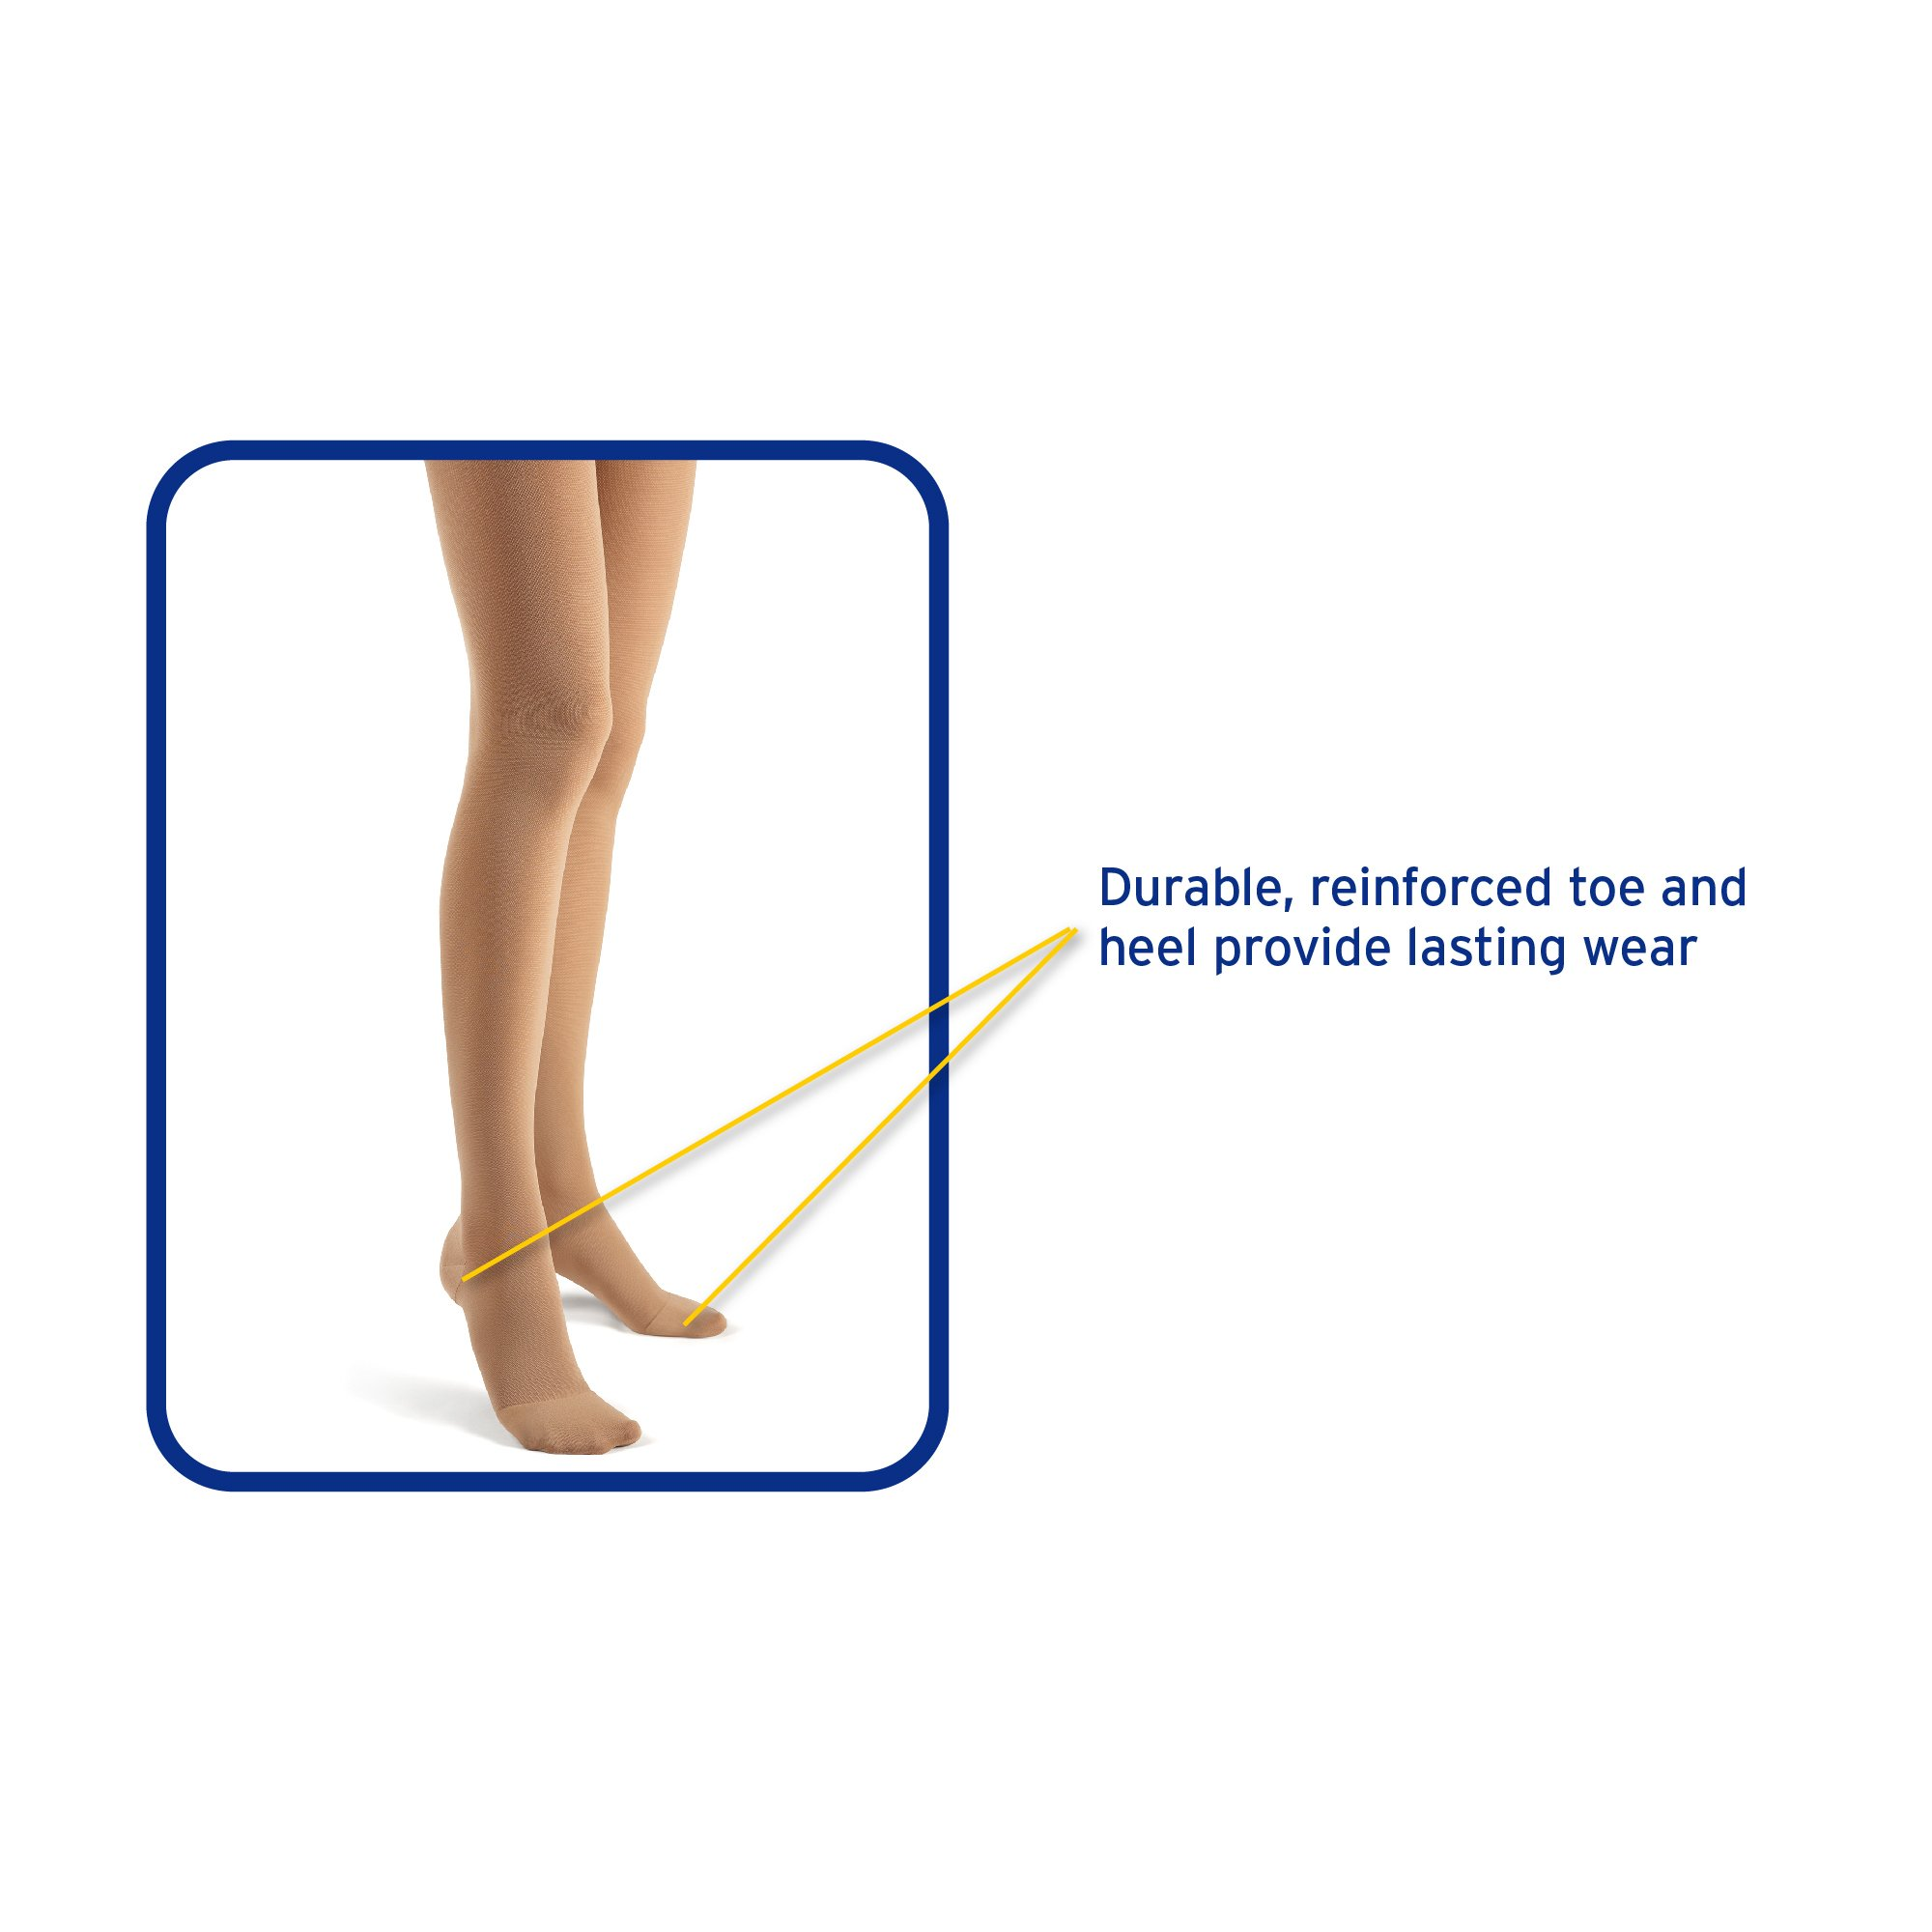 Futuro Restoring Pantyhose for Women, Helps Improve Circulation for Tired Legs, Eases Symptoms of Moderate-to-Severe Varicose Veins, Brief Cut, Large, Nude, Firm Compression by Futuro (Image #5)